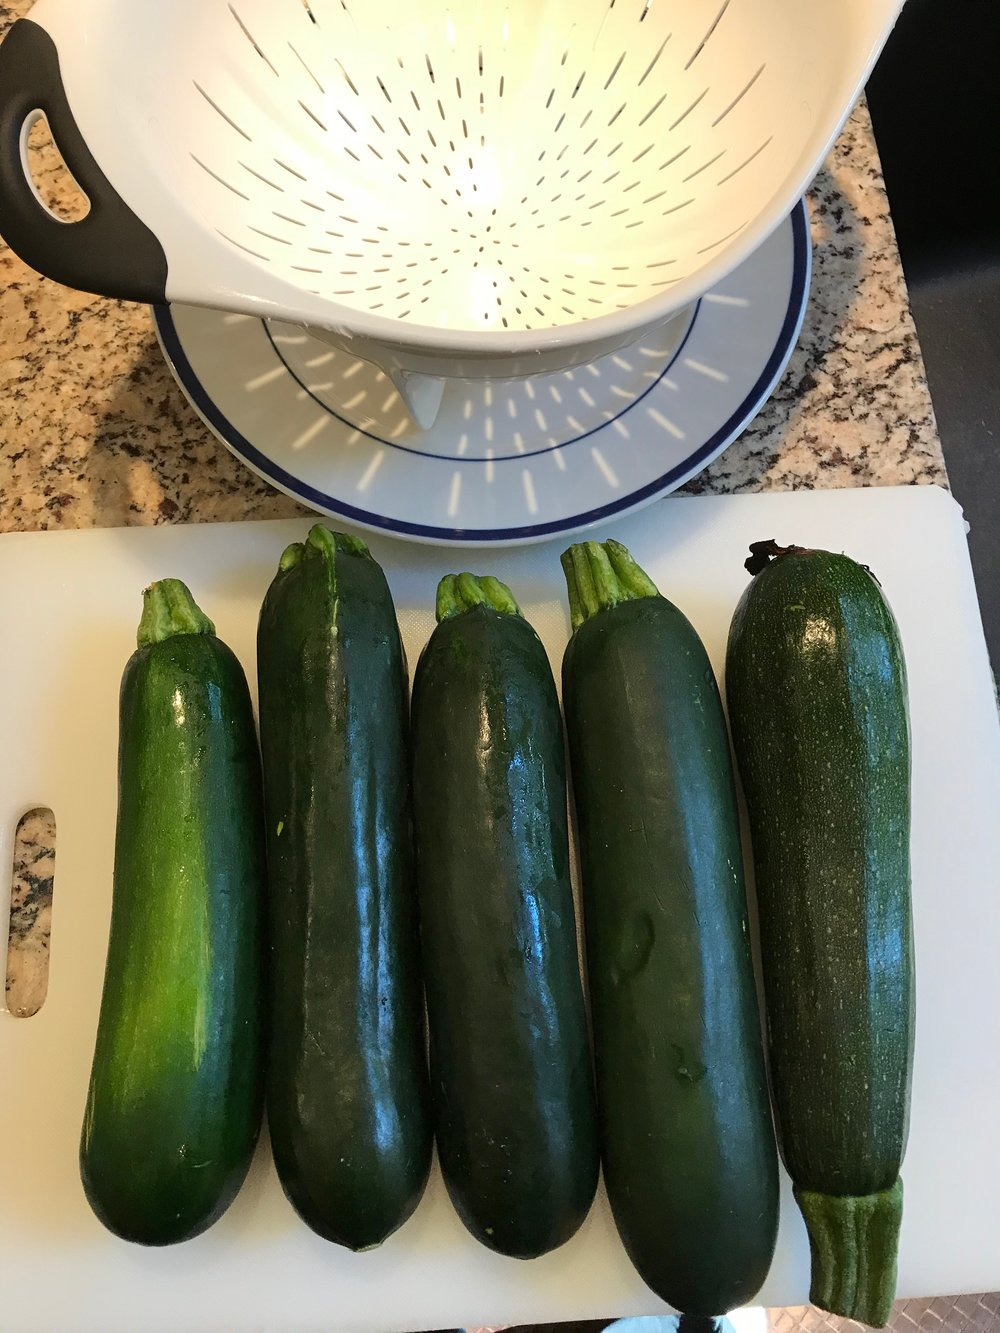 For a 2.5-quart dish I used 5 zucchini.  Try to look for thicker zucchini.